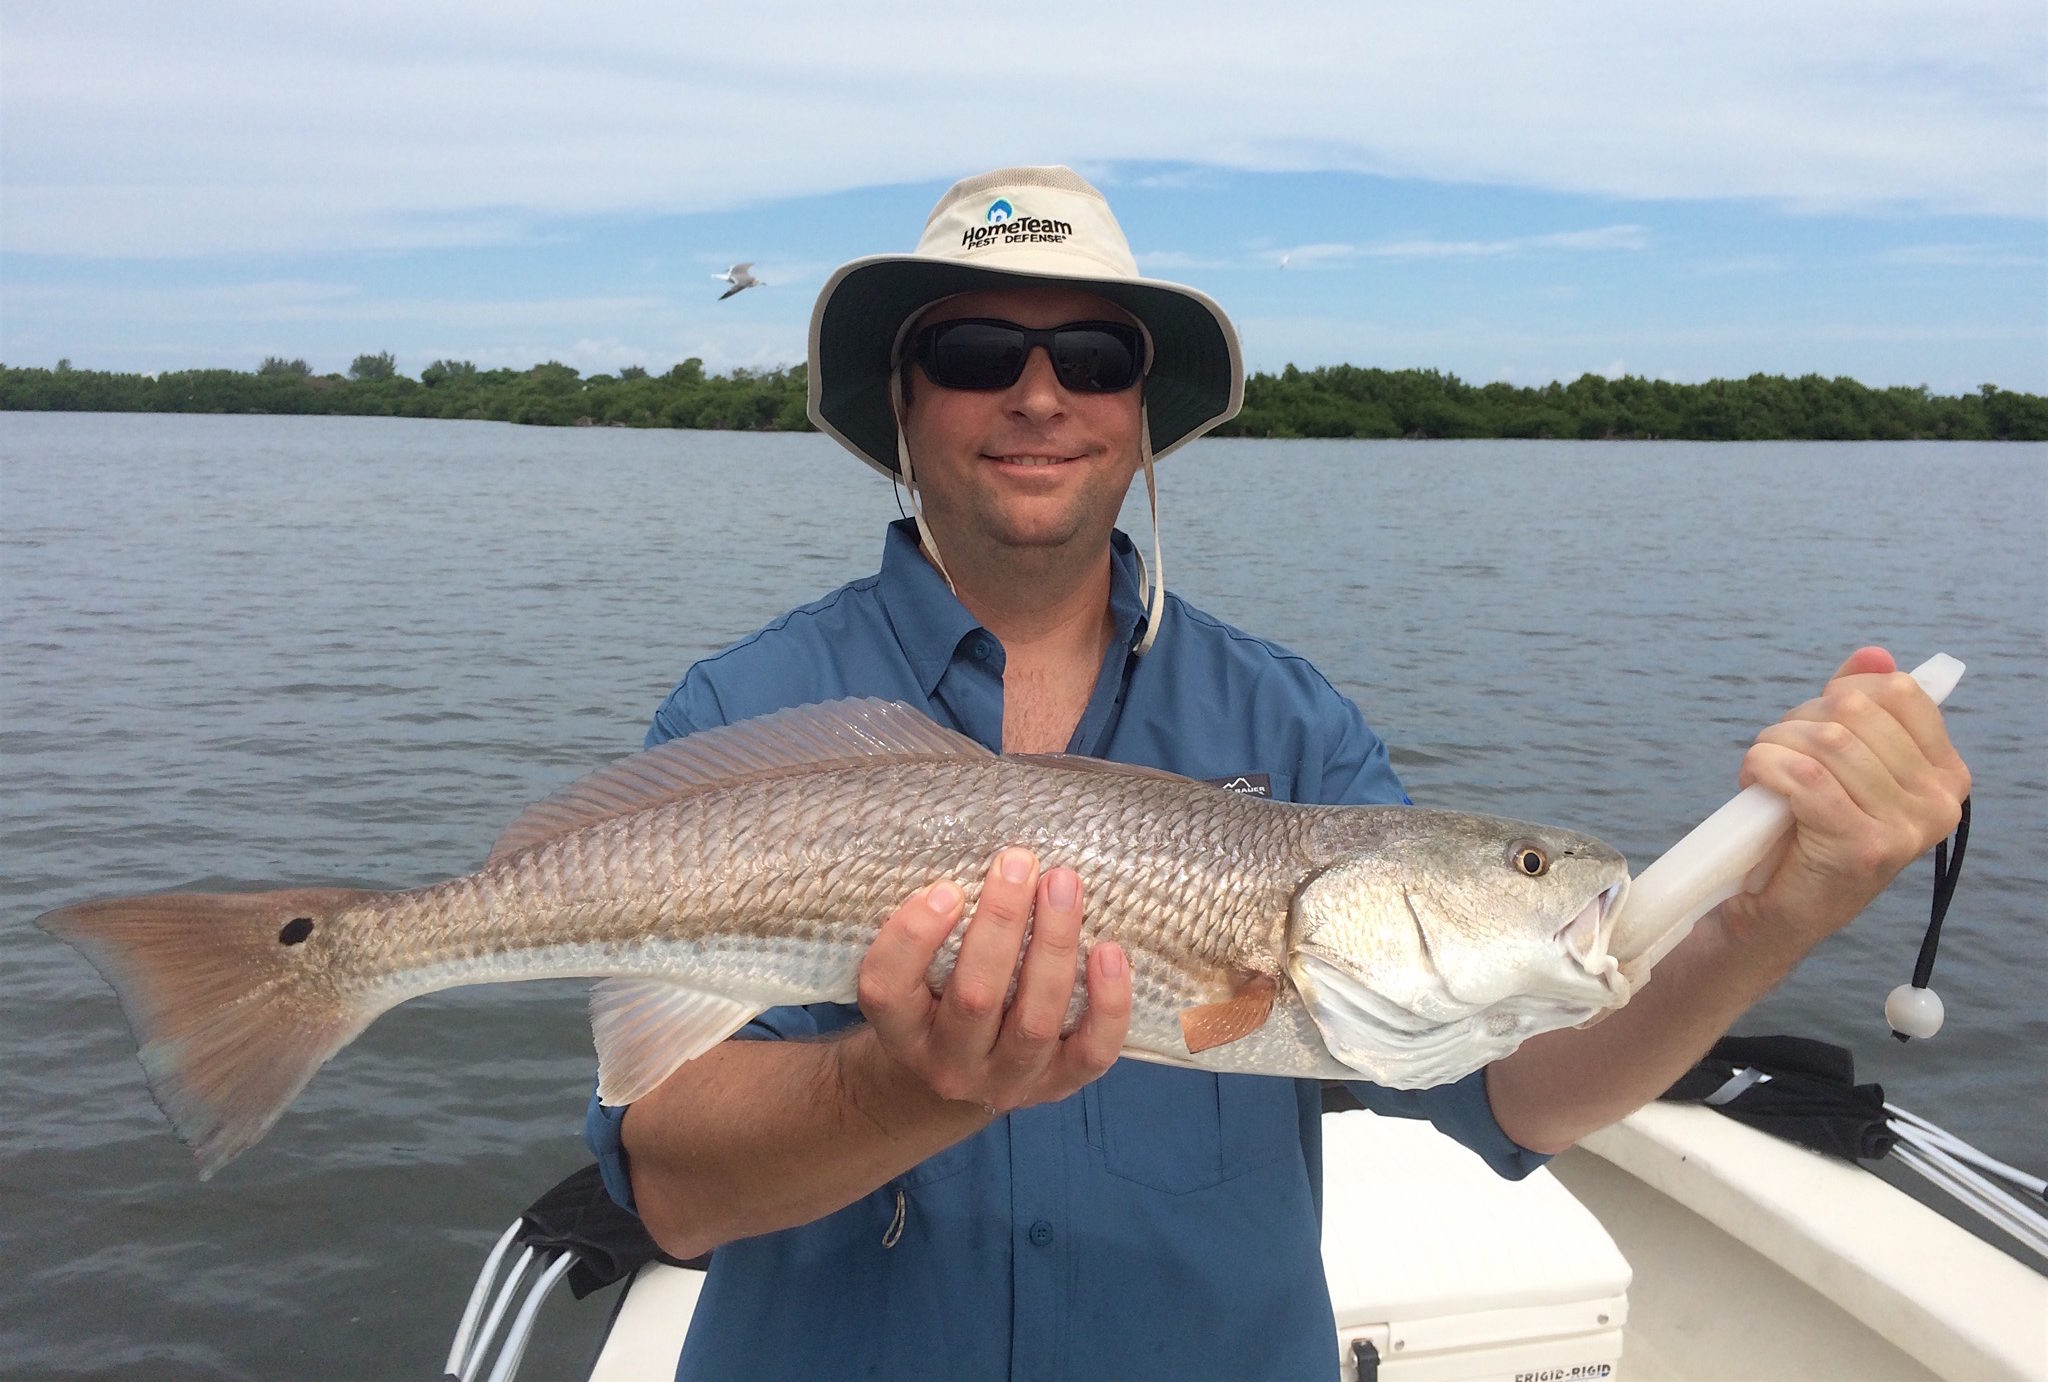 Fort myers fishing redfish august 12 2016 fort myers for Fishing in fort myers